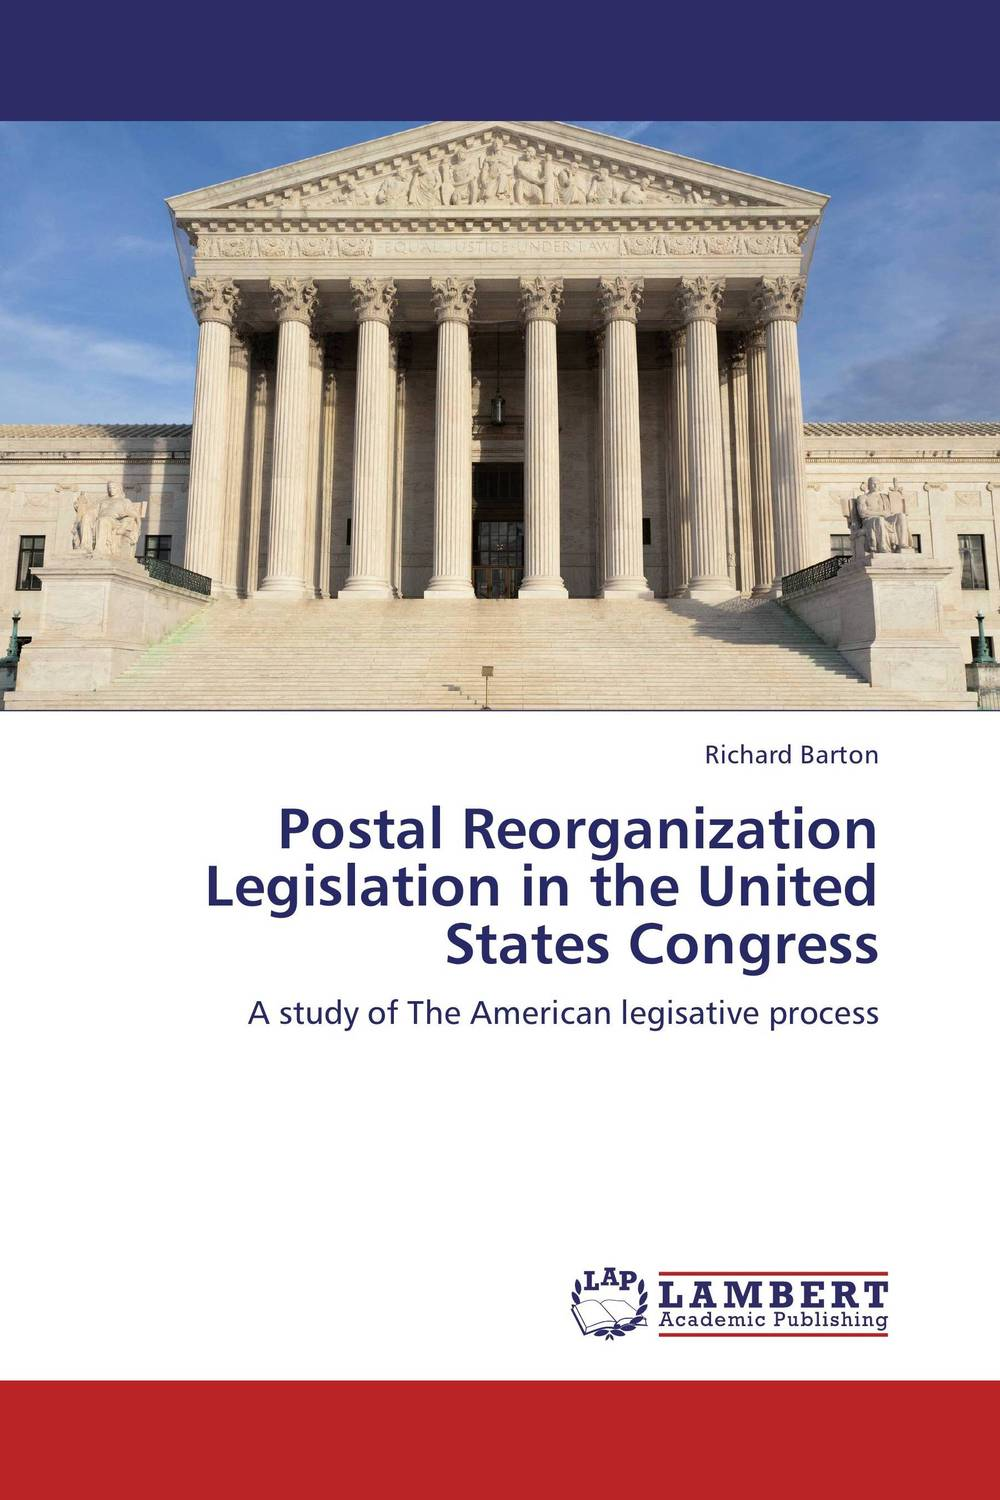 Postal Reorganization Legislation in the United States Congress